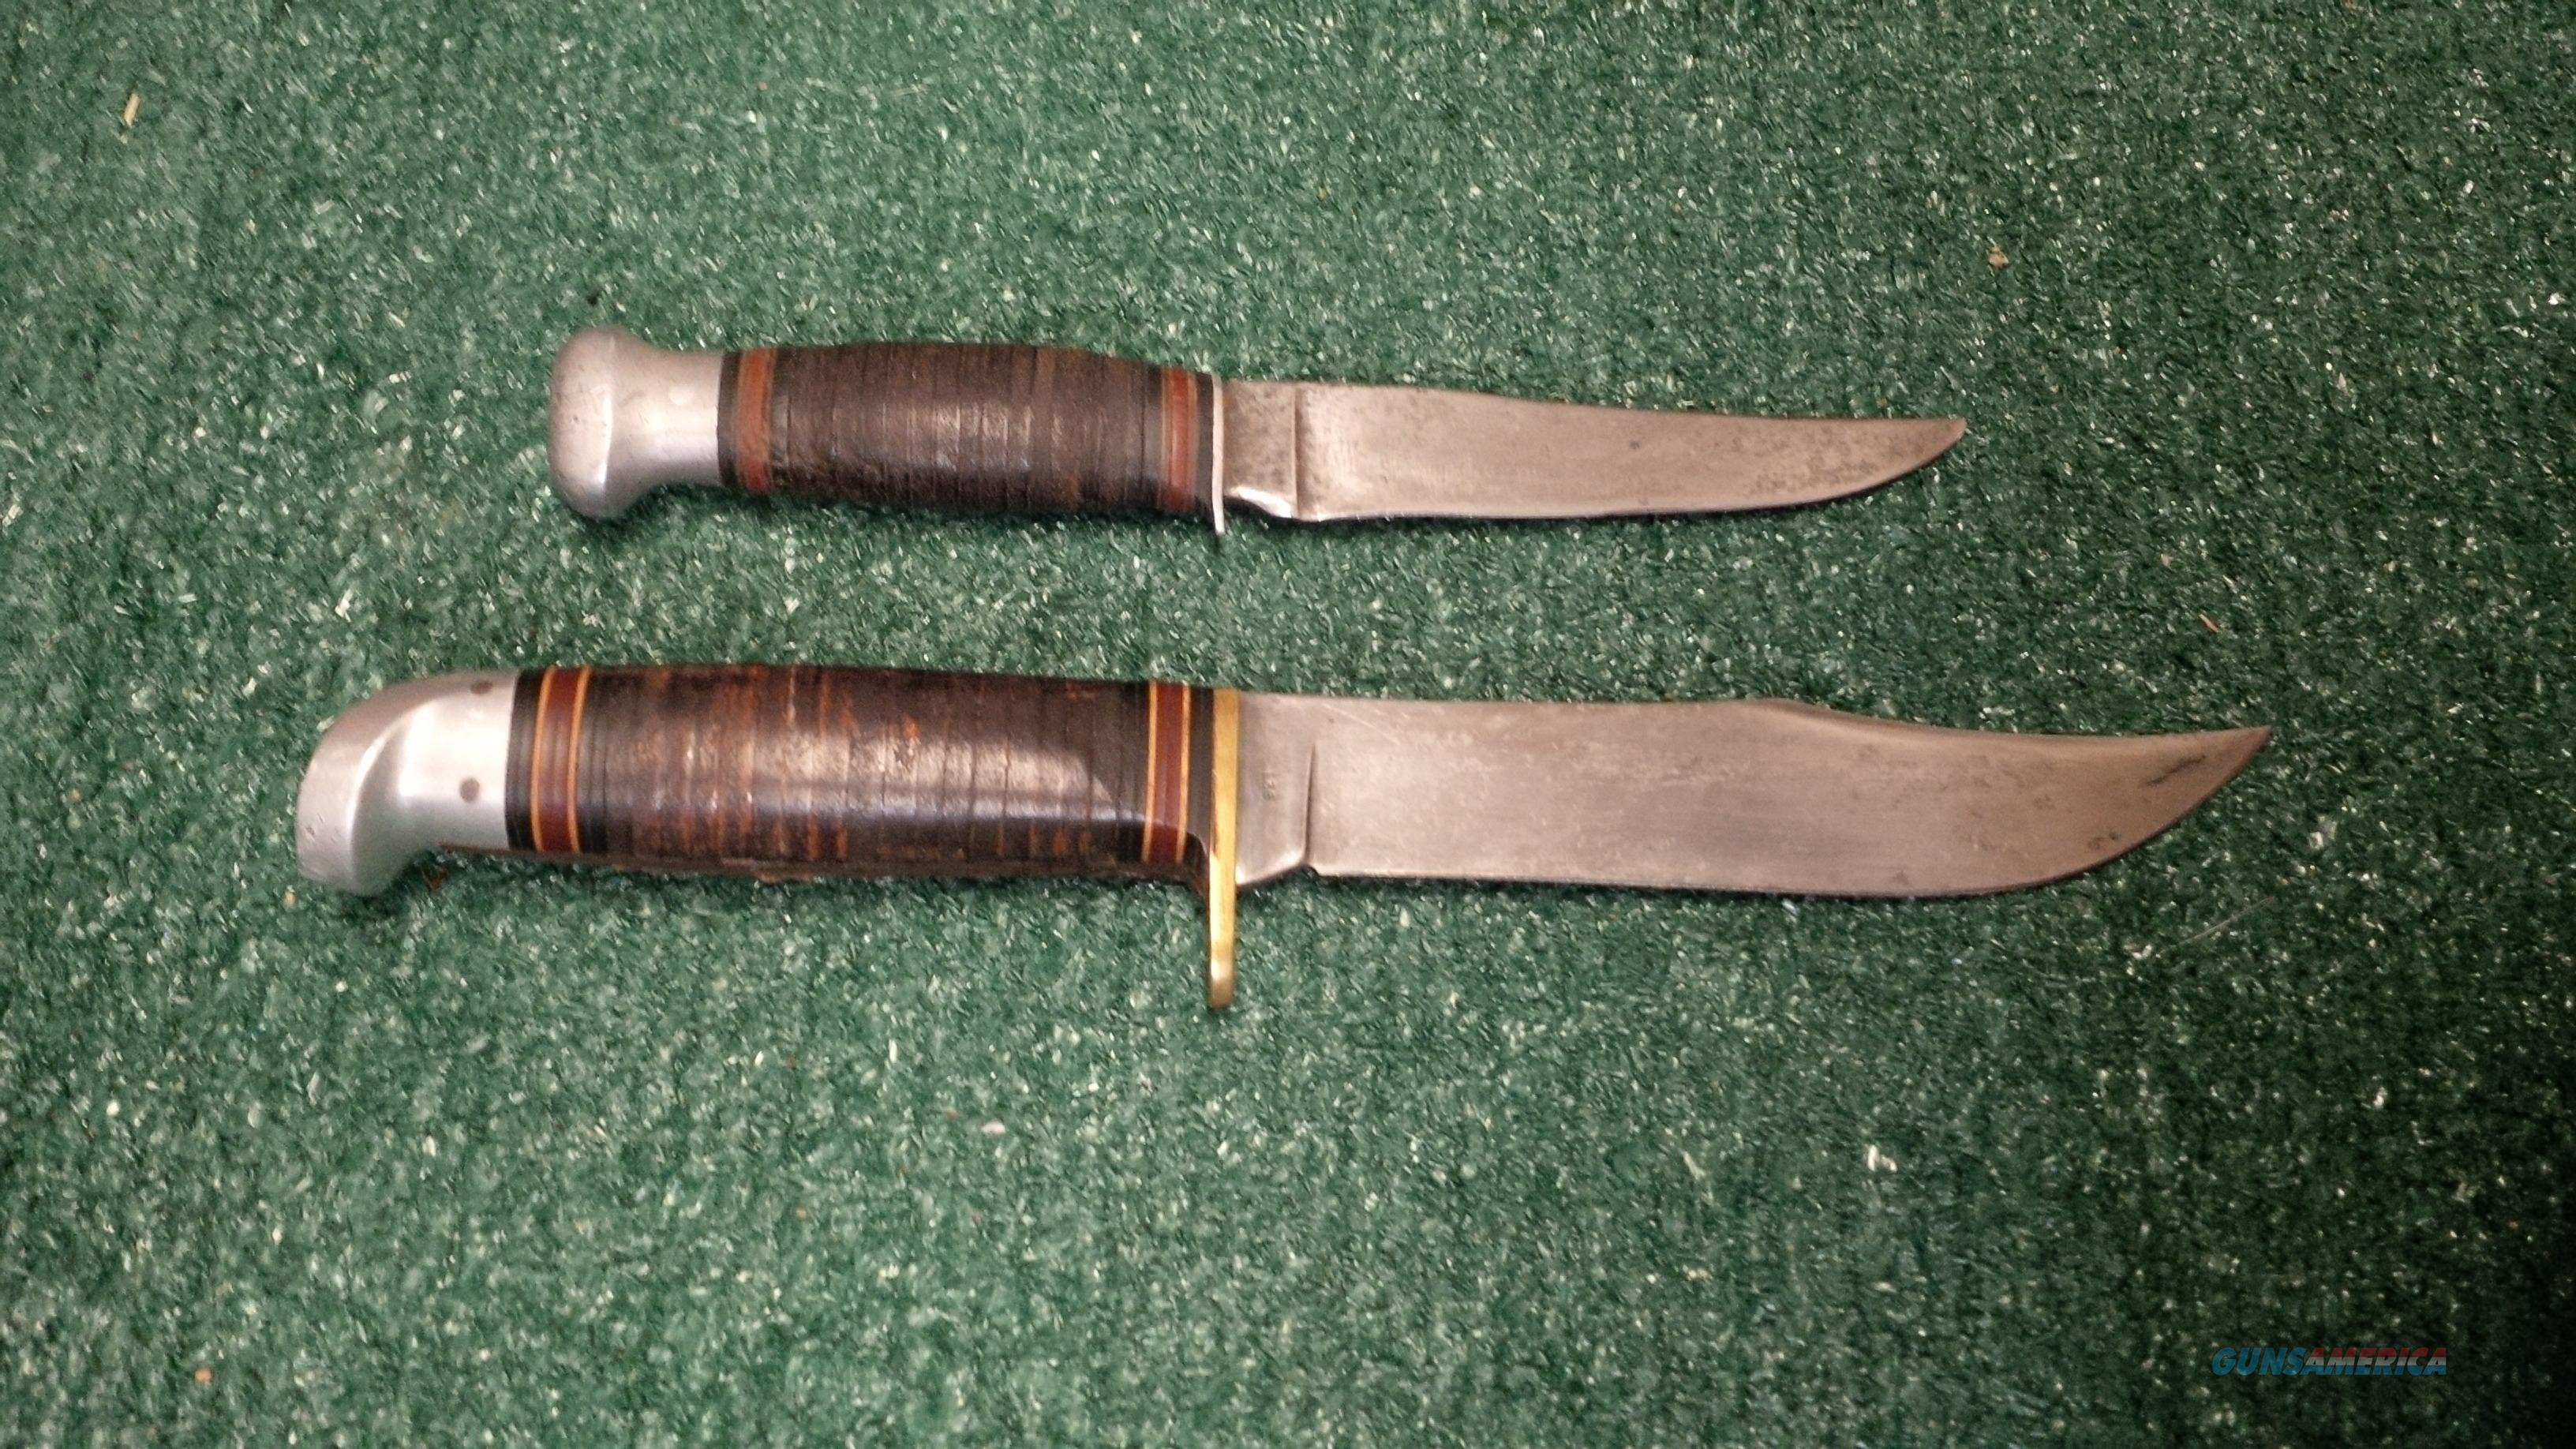 Western Knife L36 /  Pal RH-70 Knife  Non-Guns > Knives/Swords > Knives > Fixed Blade > Hand Made